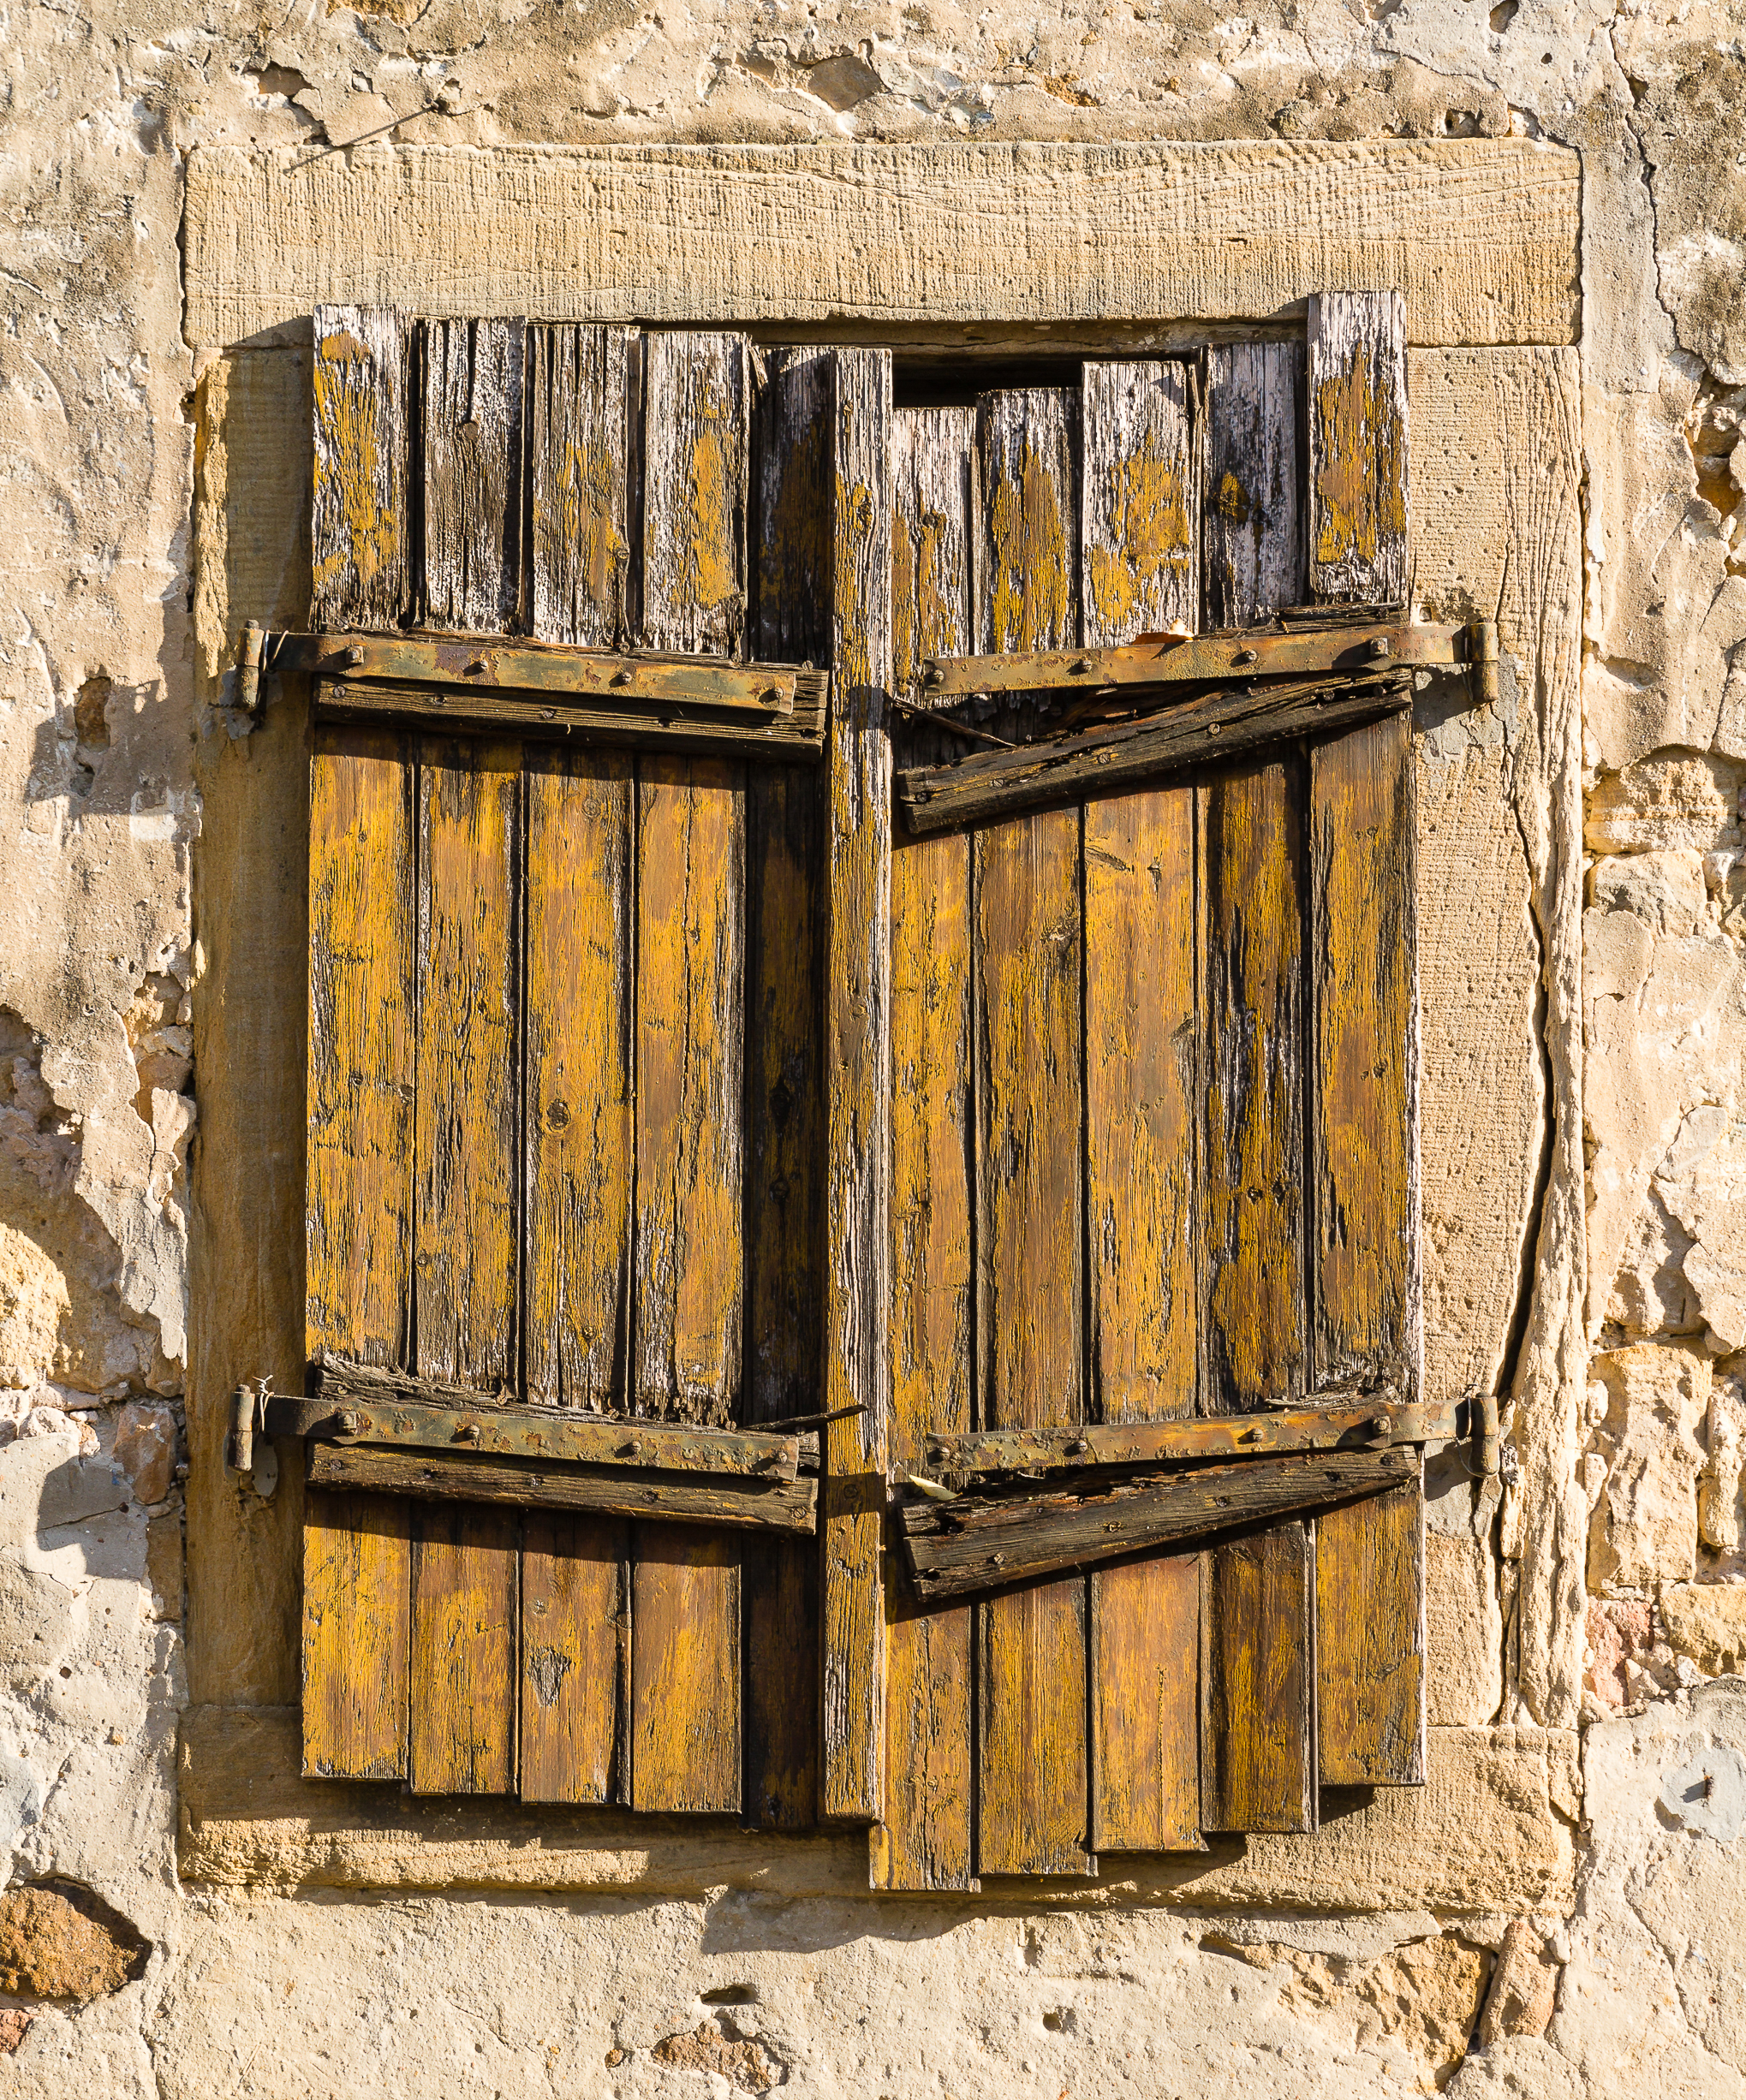 File:2015 10 11 004 Weathered window shutter.jpg - Wikimedia Commons